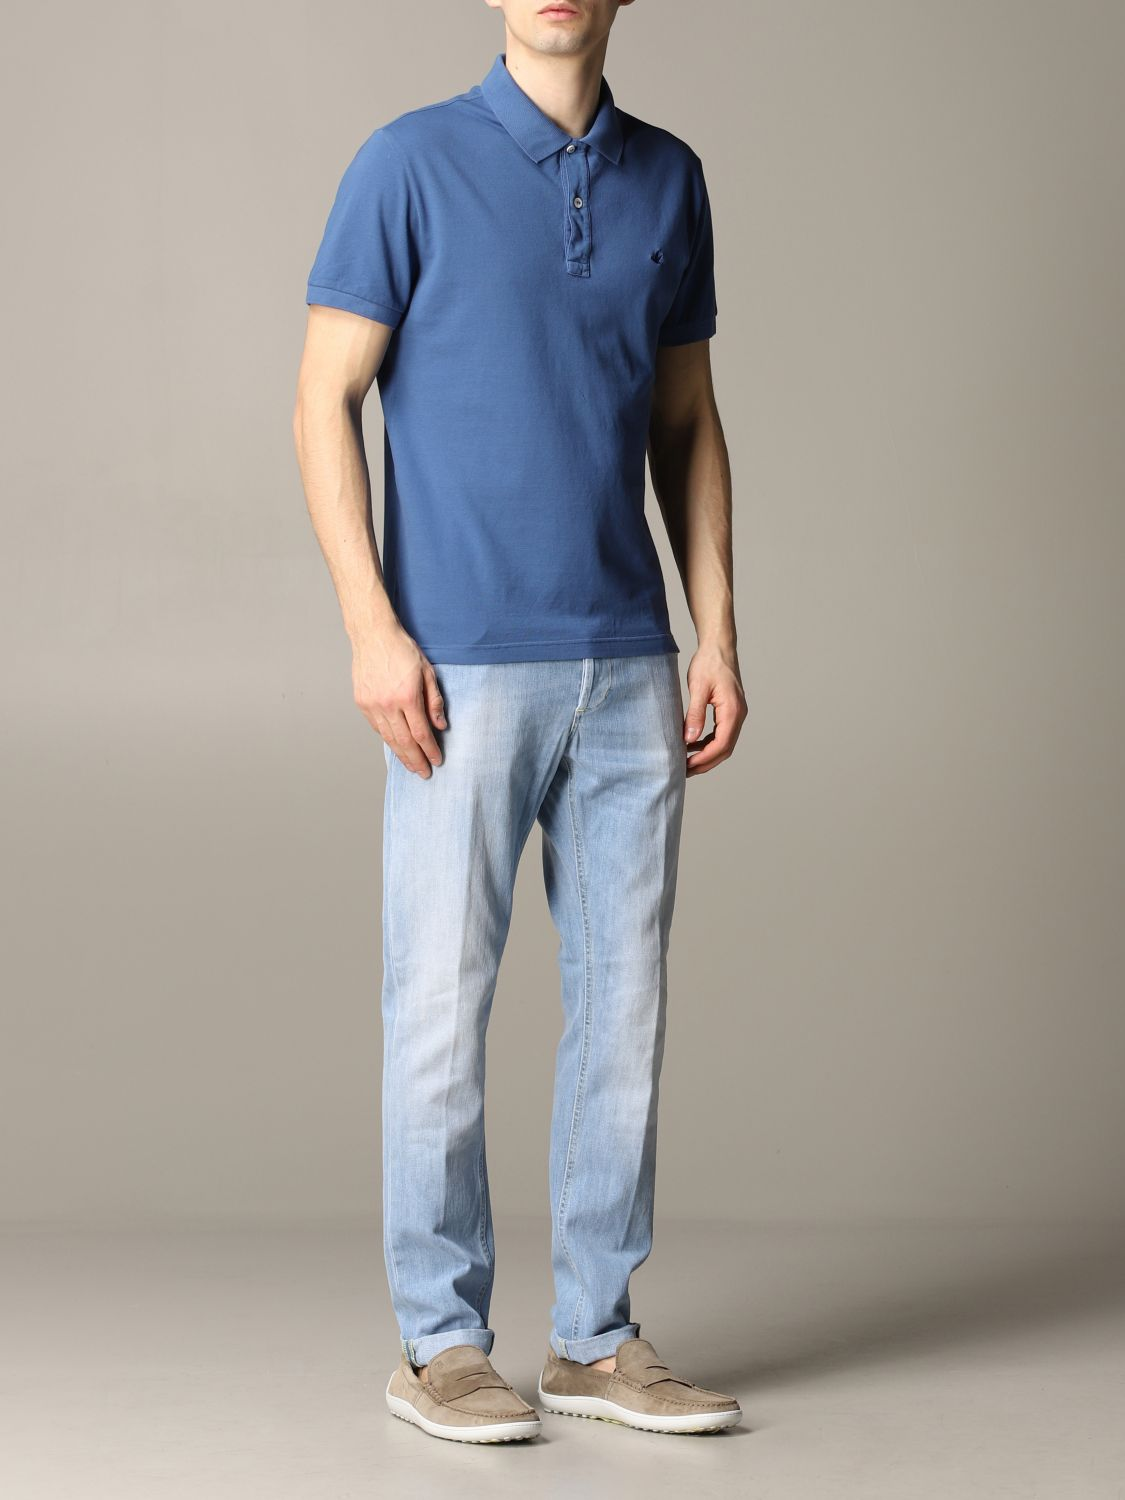 Jeans Dondup: Ritchie Dondup Slim Fit Jeans stone washed 2